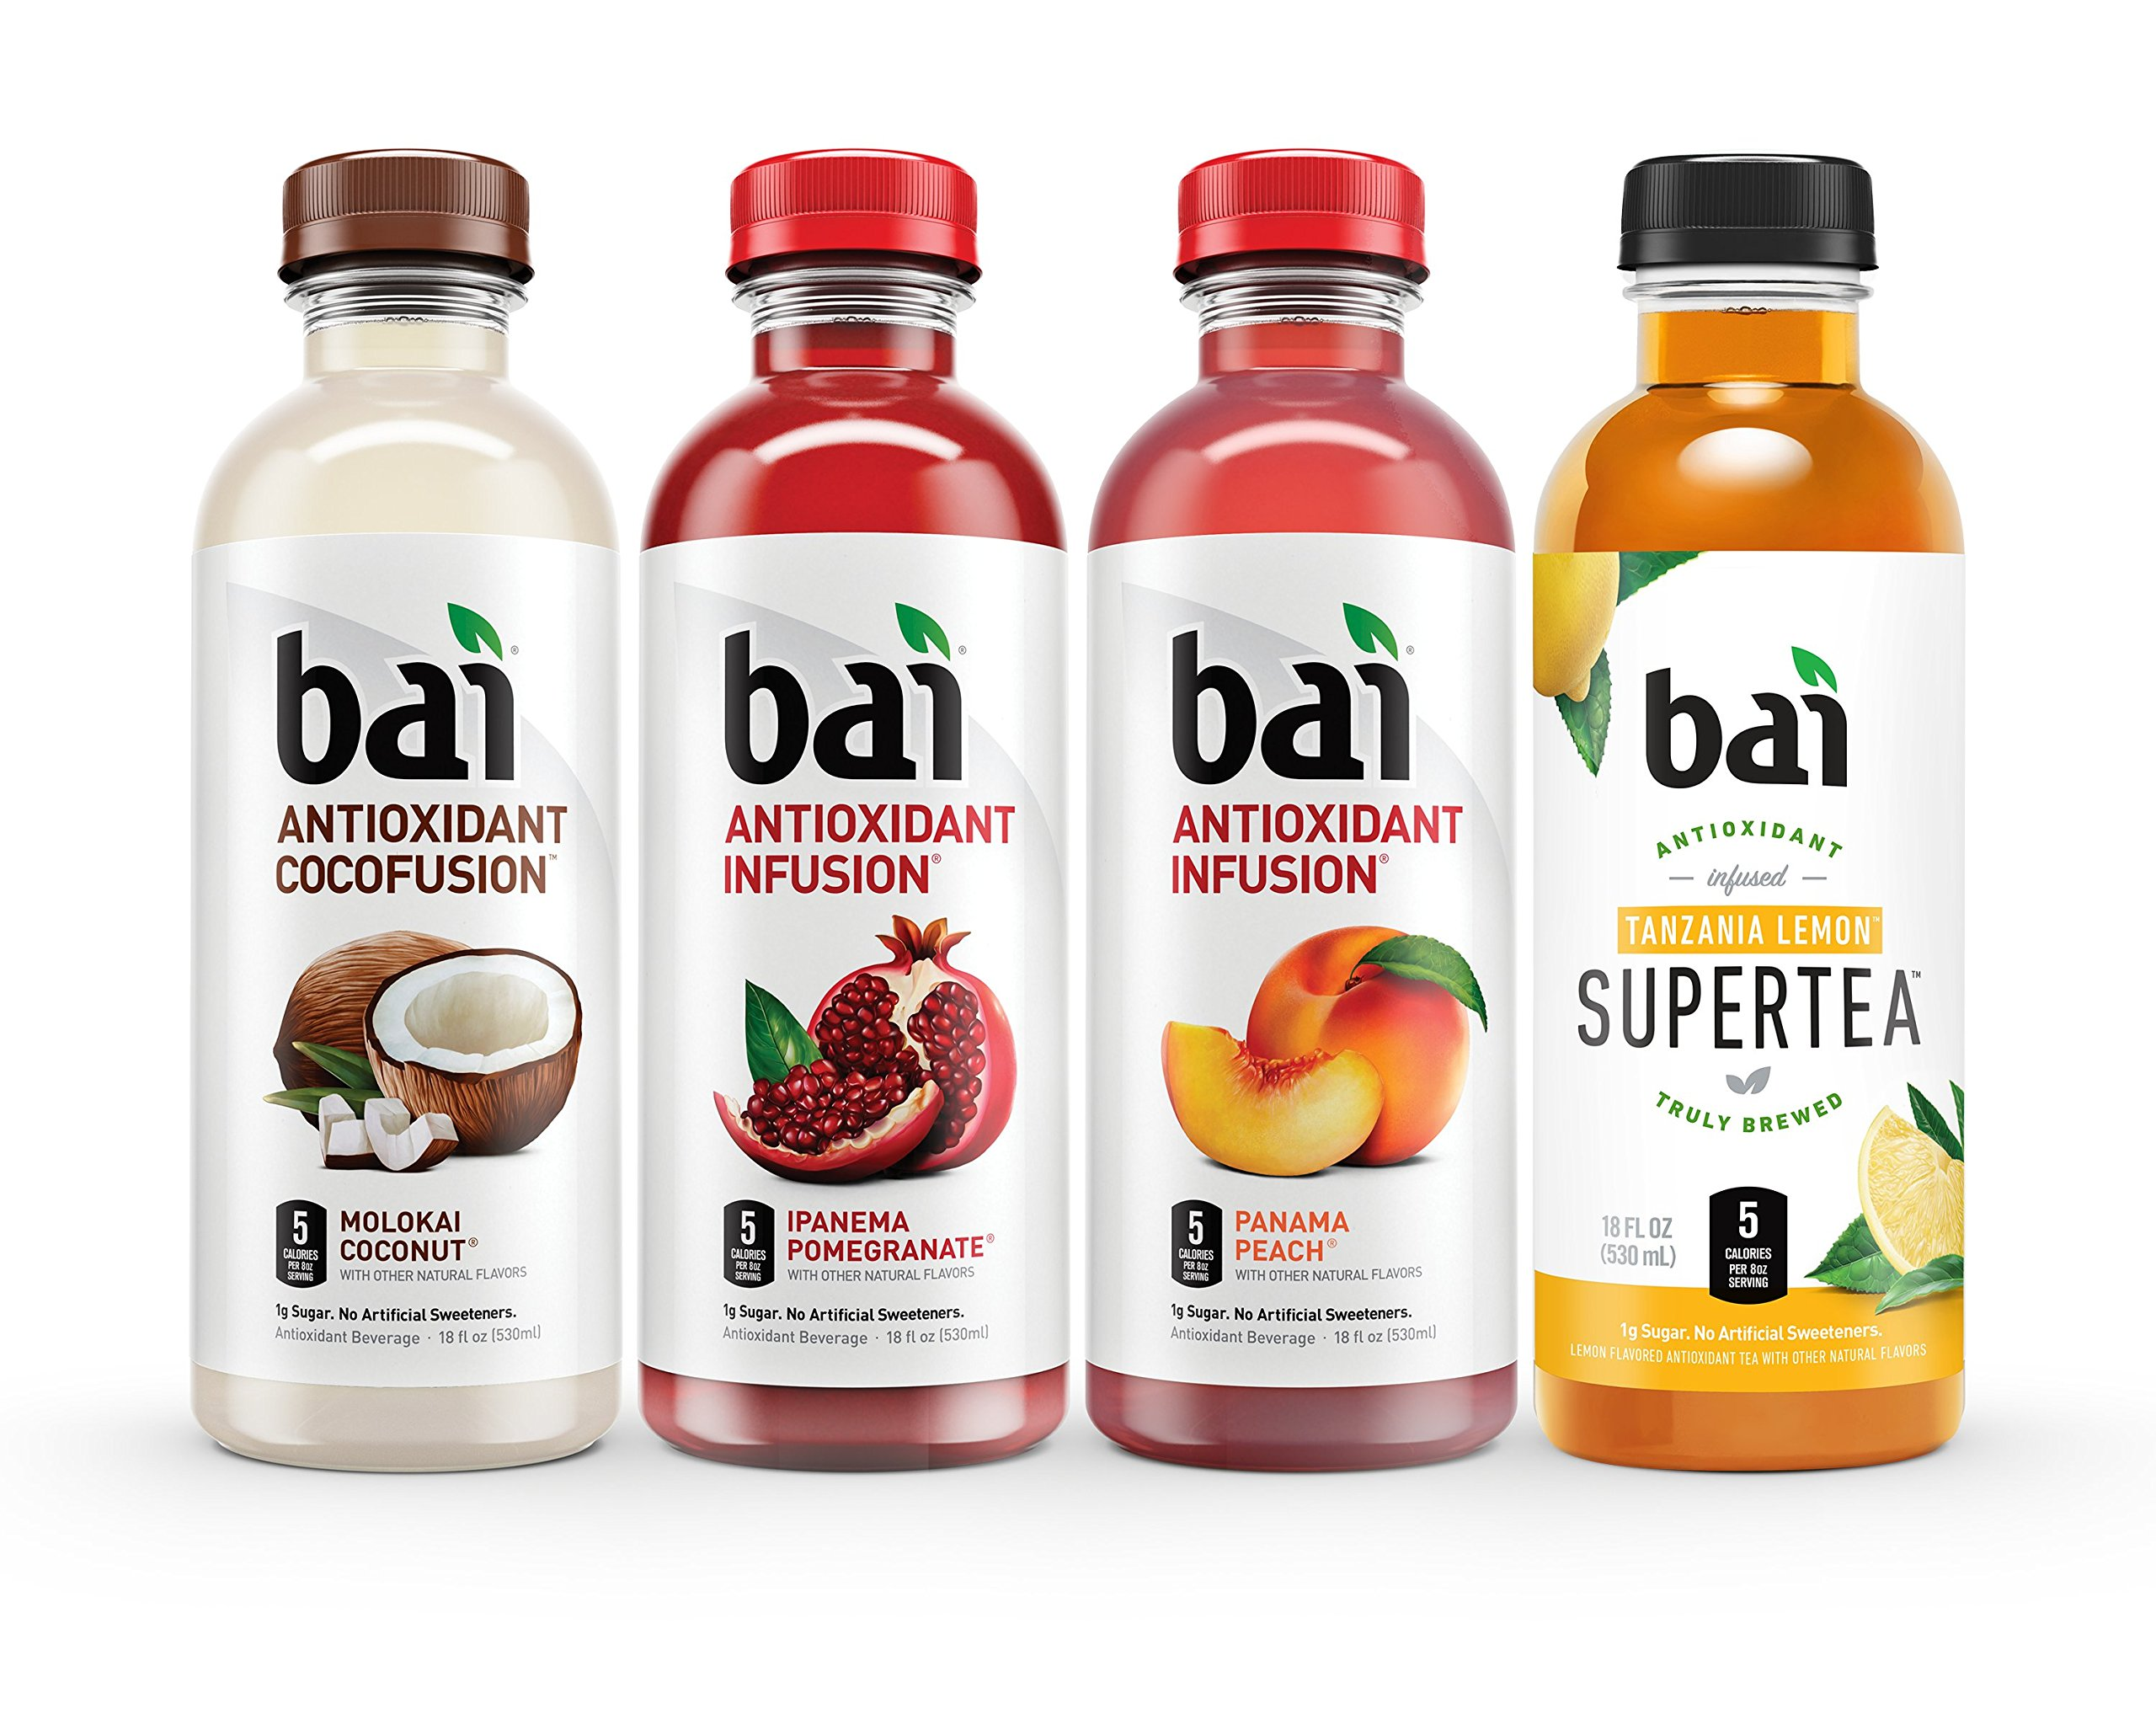 Bai Mountainside Variety Pack, Antioxidant Infused Beverage, 18 Fluid Ounce Bottles, 12 count